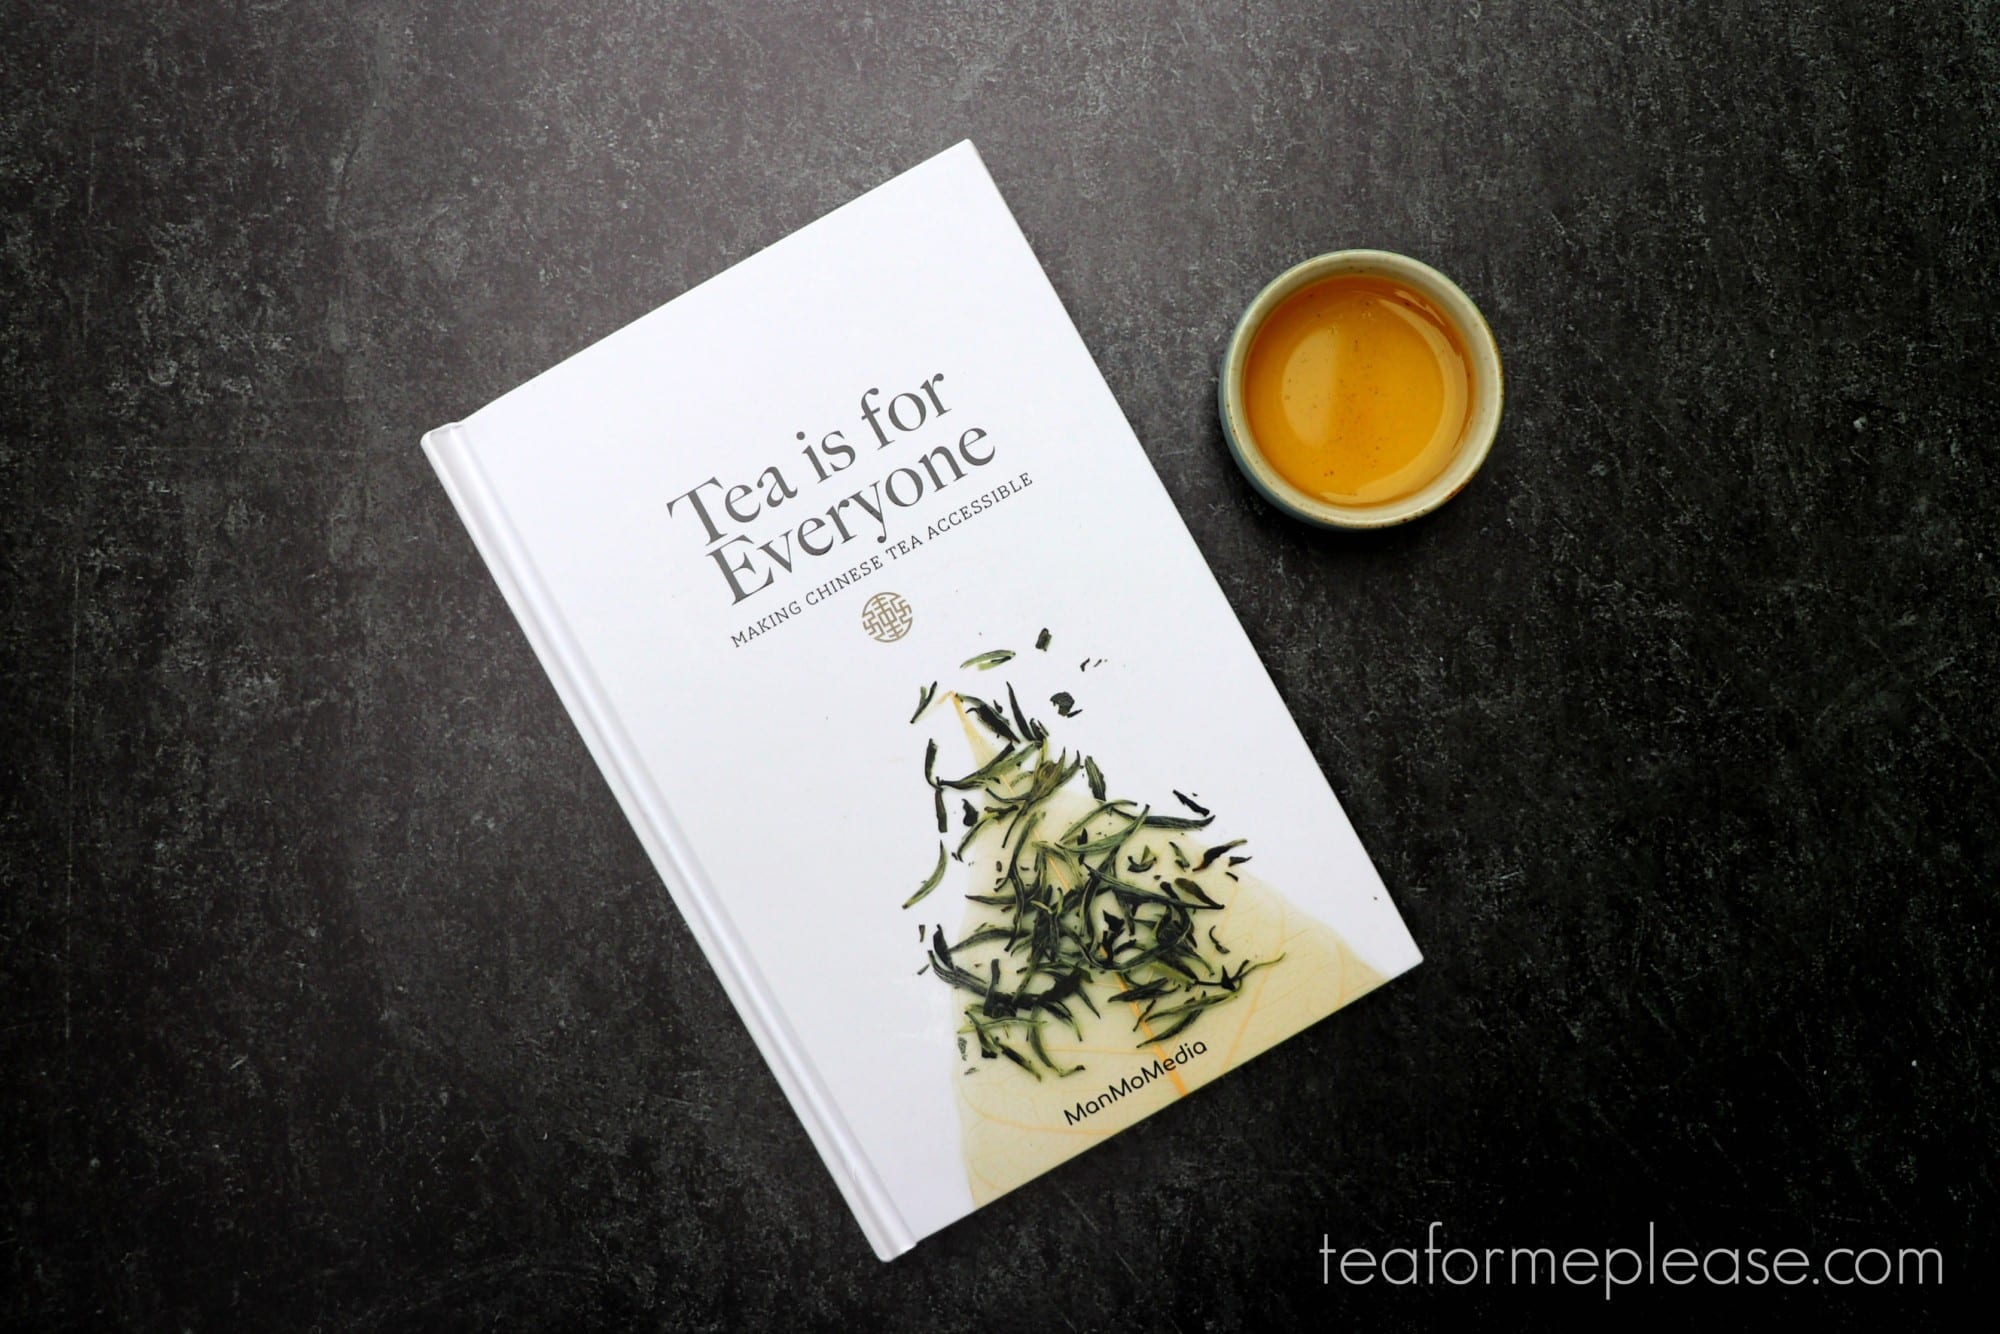 Tea is for Everyone by Chan Sin Yan